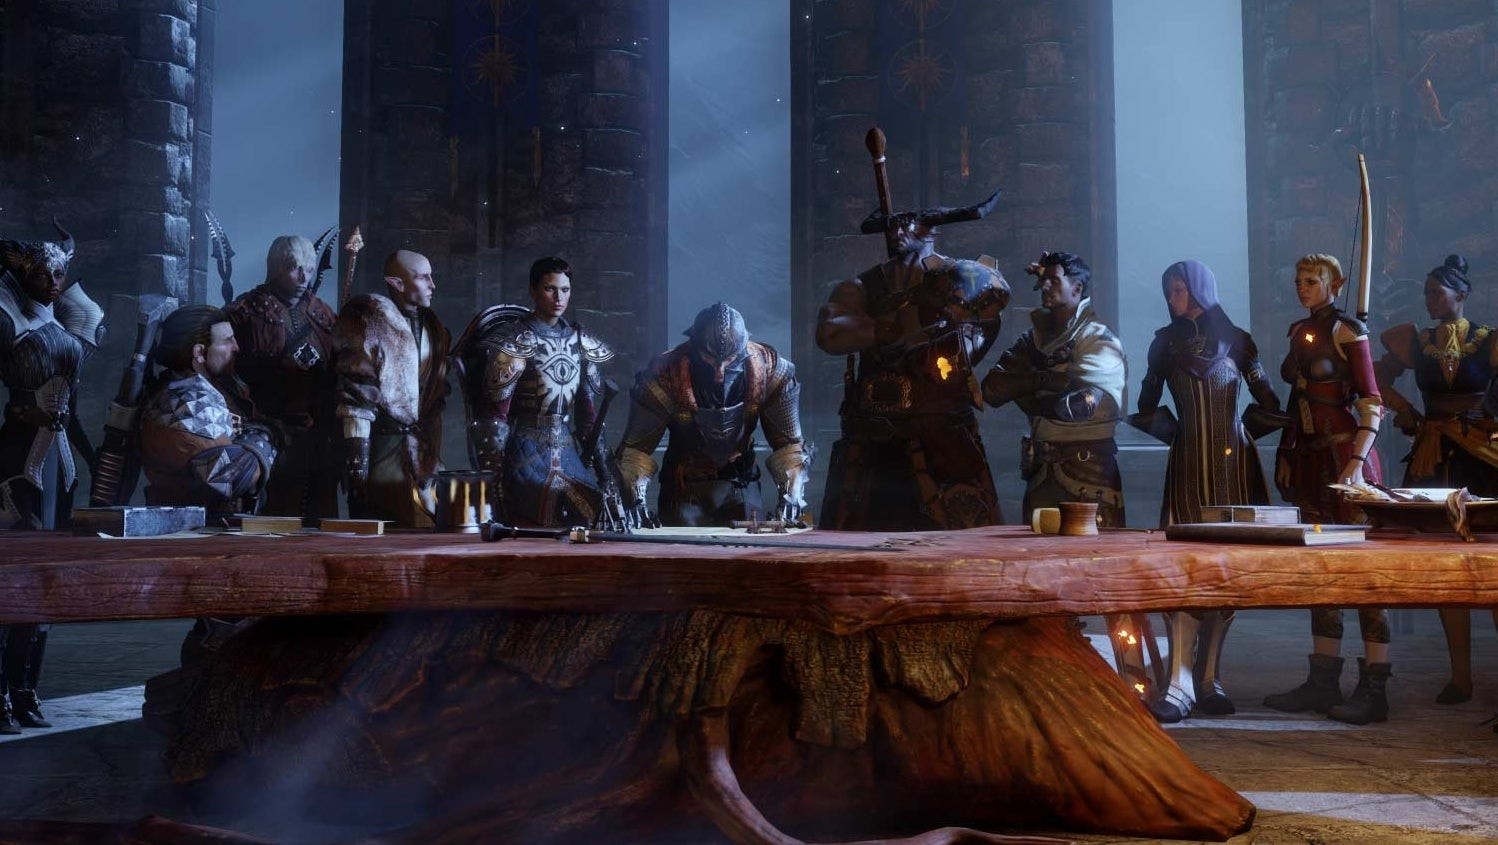 How BioWare Plans Who You Can Romance In Their Games